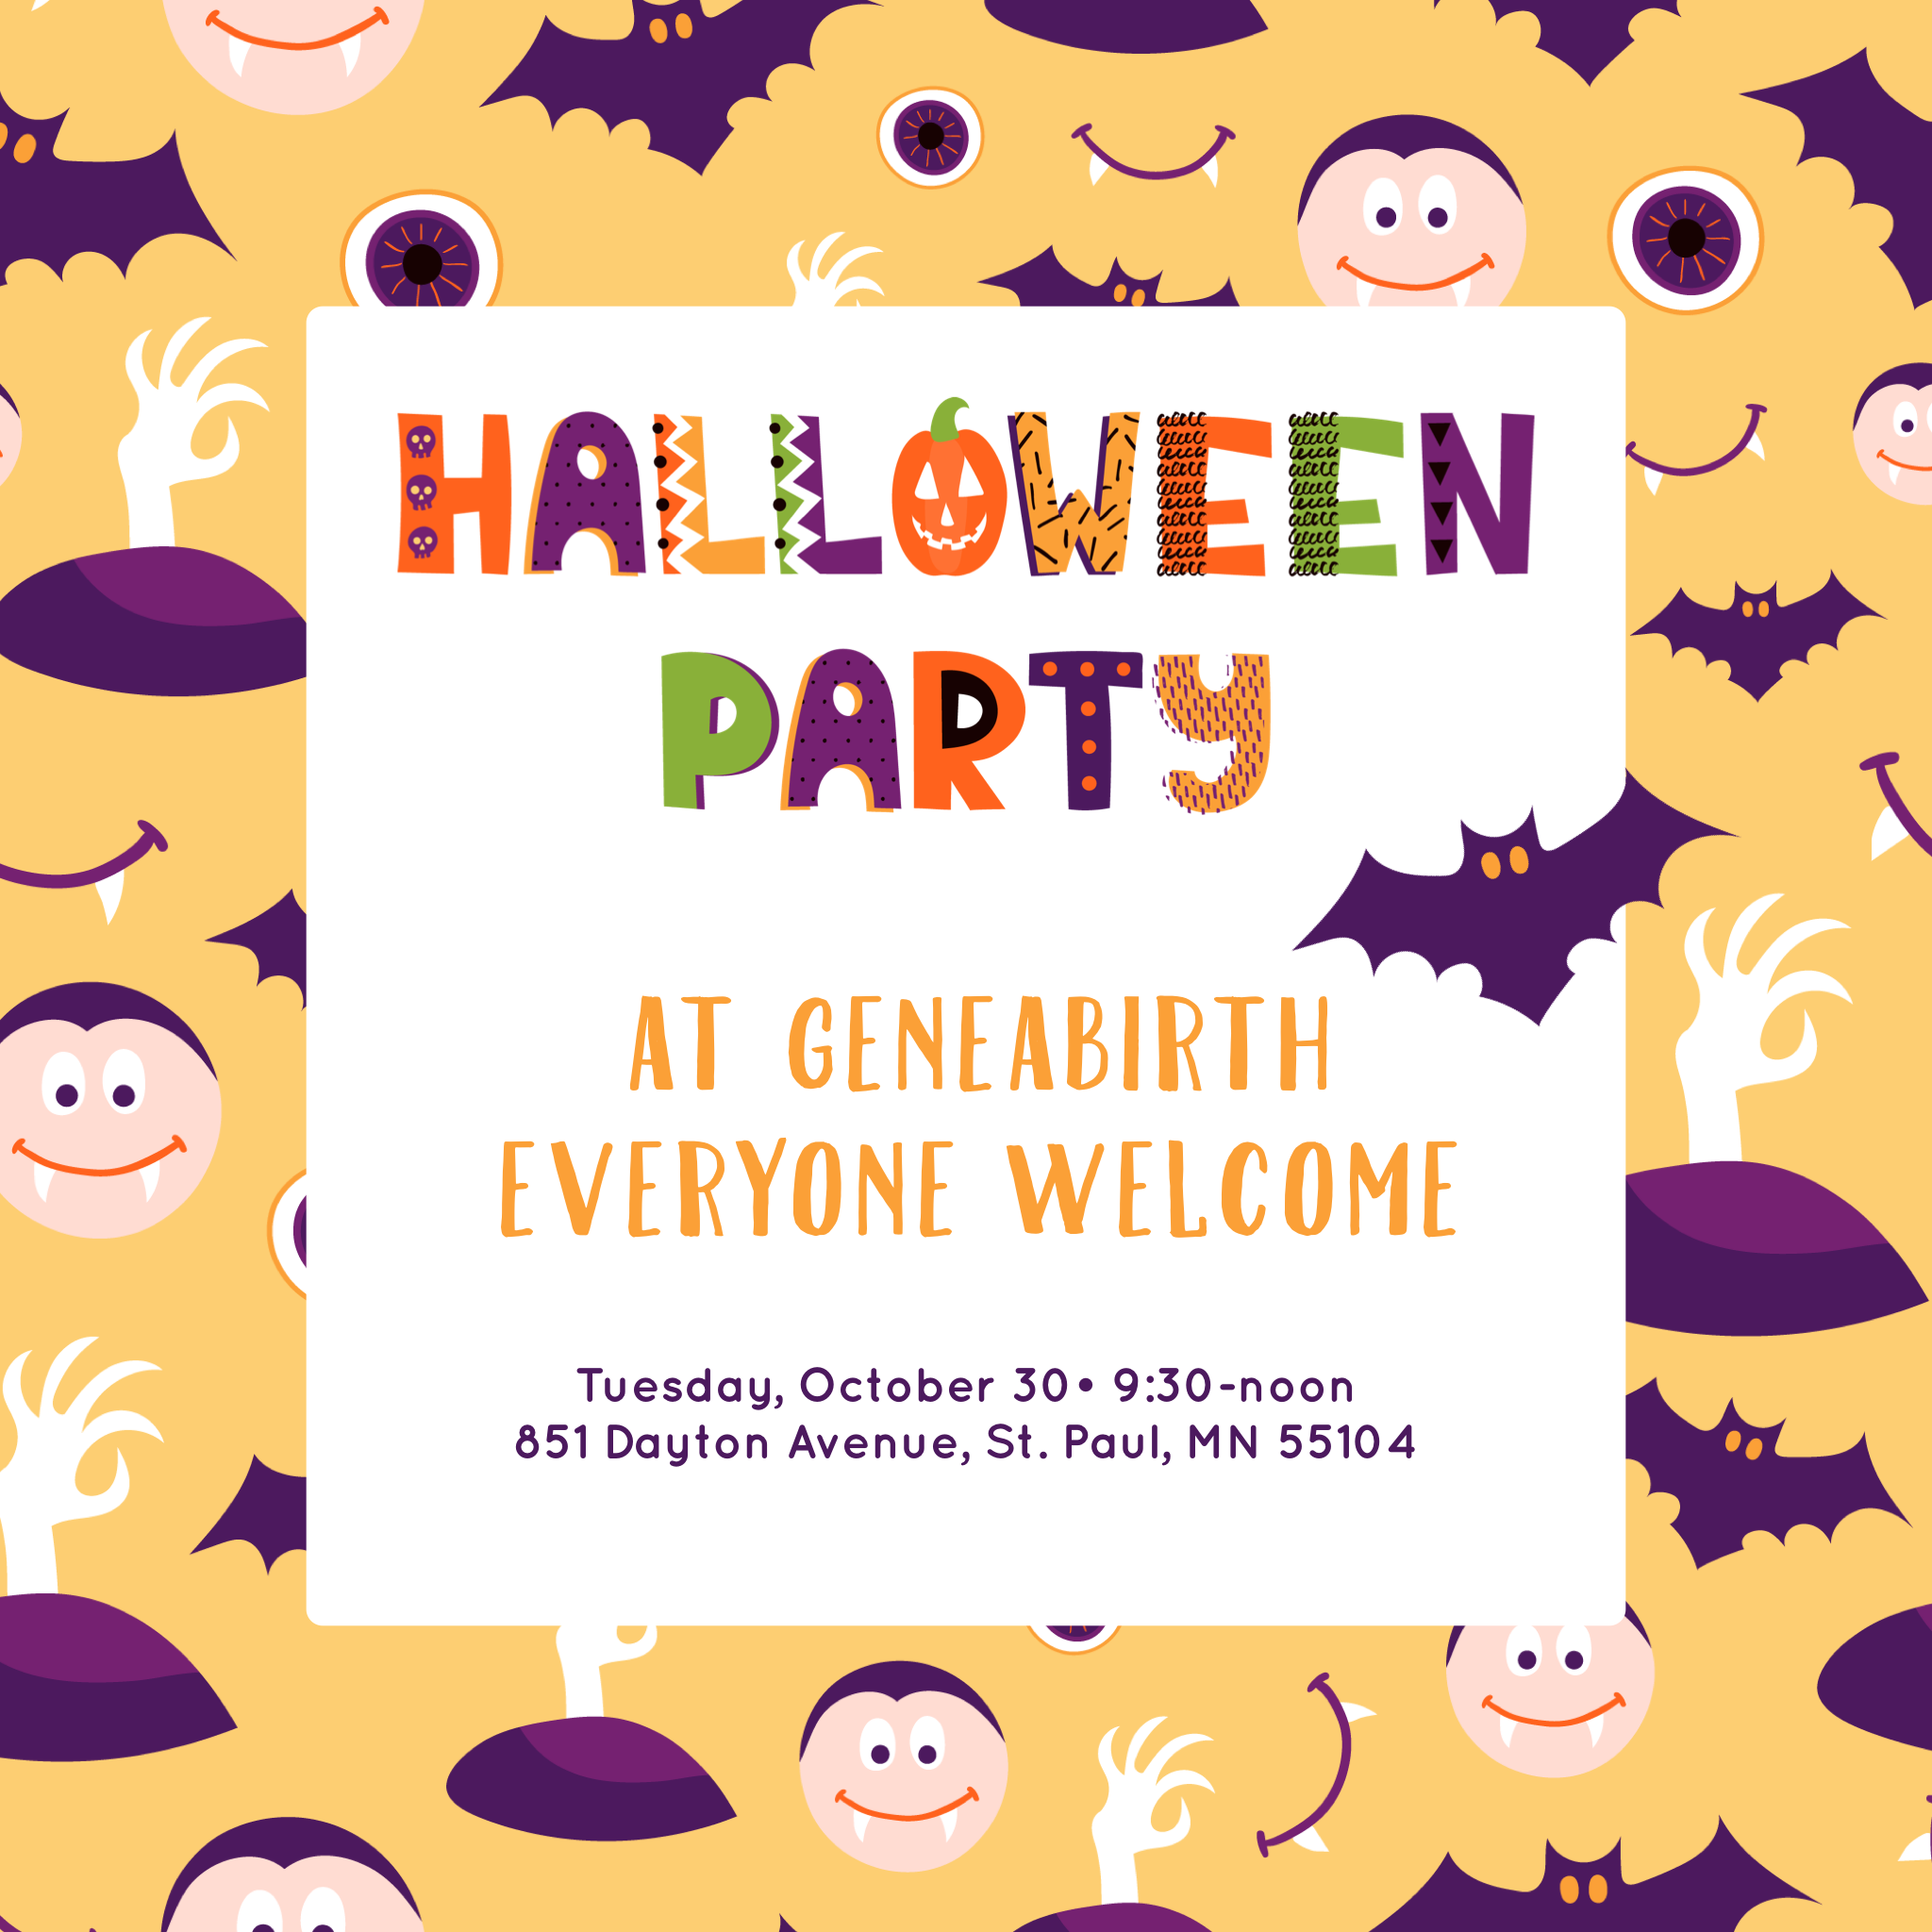 Join us for some Halloween fun! - Halloween sensory bin—Toddler/preschooler craft—Halloween goodies!We have plenty of comfy places to sit and toys for the little ones. We'll have coffee, tea and some snacks to share. Potluck snacks are encouraged, but don't worry if you are not able to bring a snack, just bring yourself and your little ones. If your baby is too small for crafts and party activities, join us anyway for a cup of tea and some conversation.This event is open to the whole community. You do not need to be a geneabirth client to come.We hope to see you there,Sarah & Erin